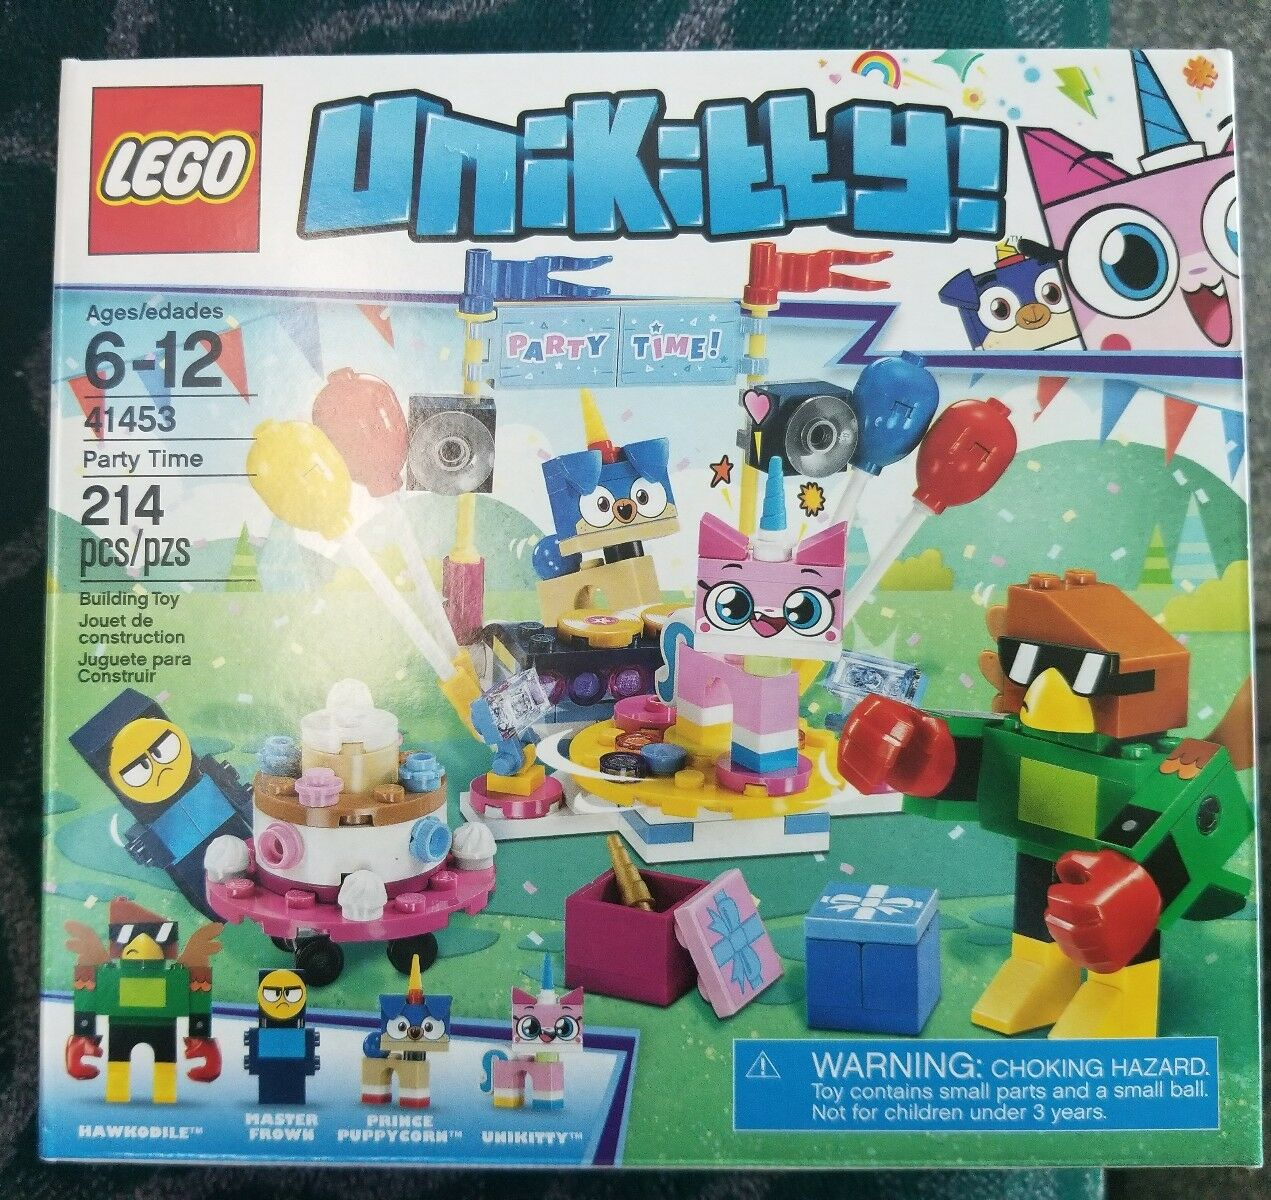 LEGO 41453 - UNIKITTY UNIKITTY UNIKITTY - PARTY TIME 04c909